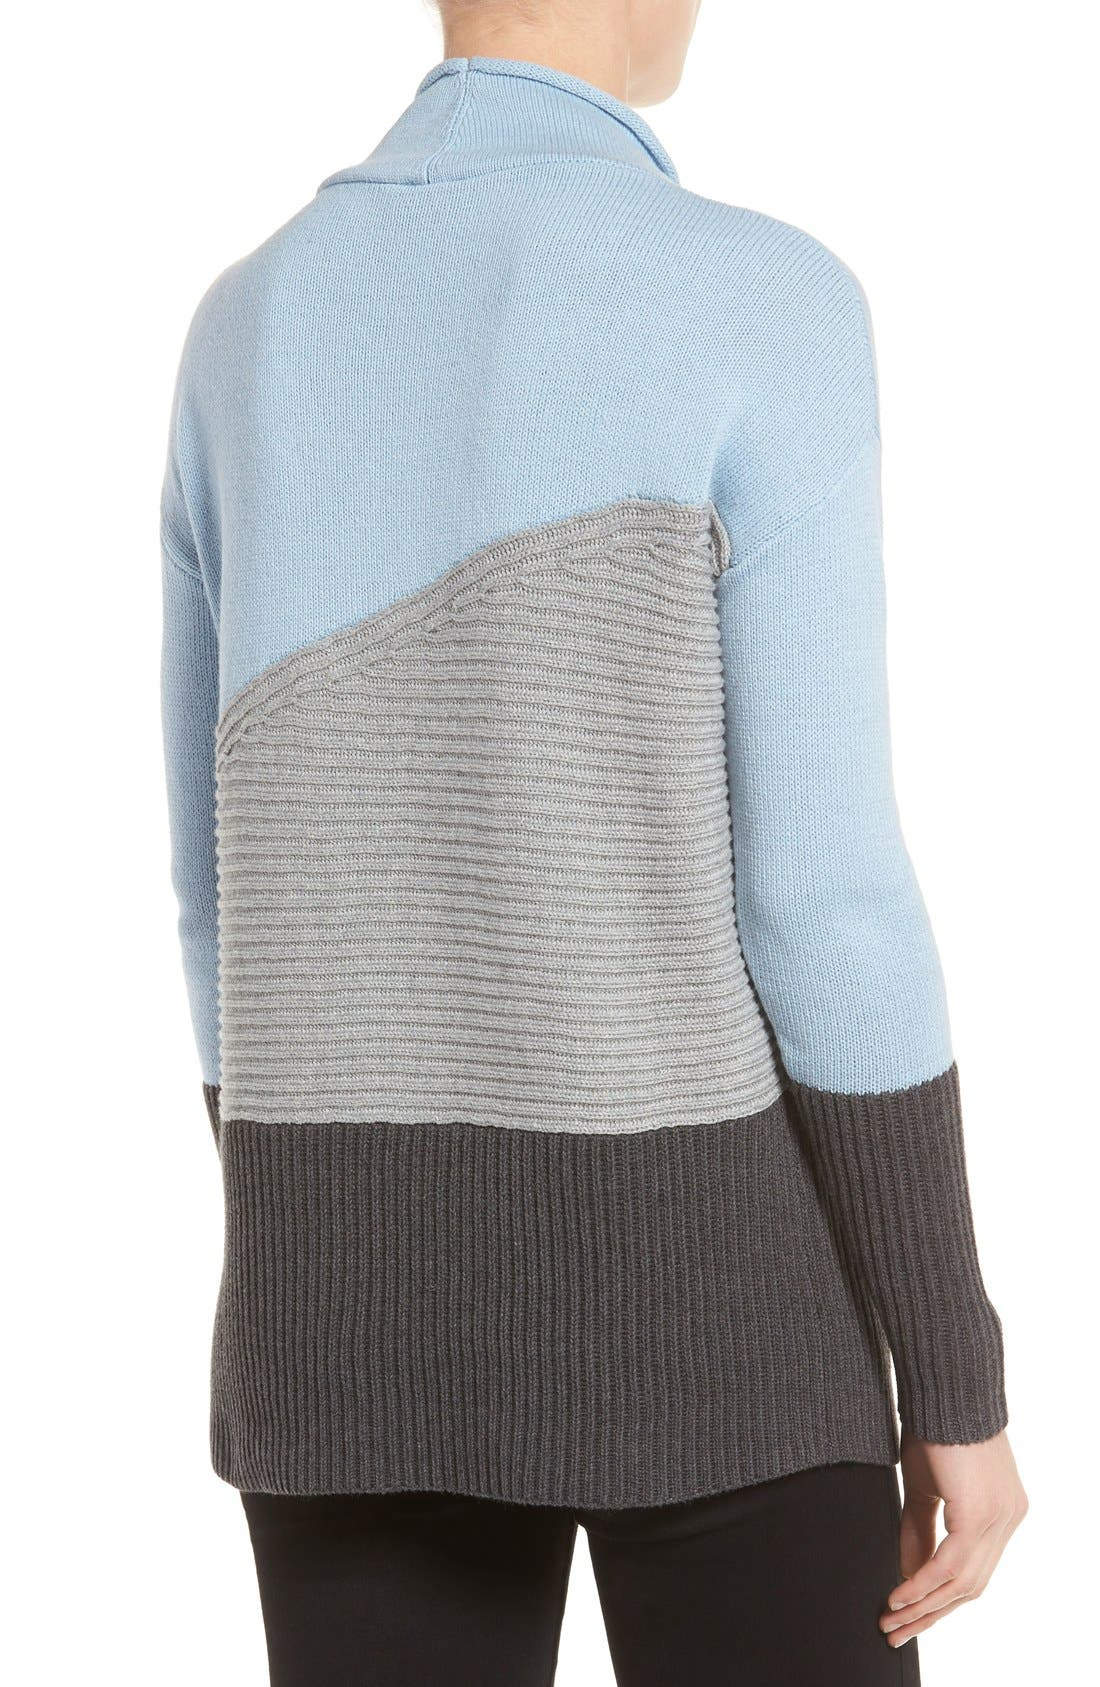 Alternate Image 2  - Vince Camuto Colorblock Turtleneck Sweater (Regular & Petite)